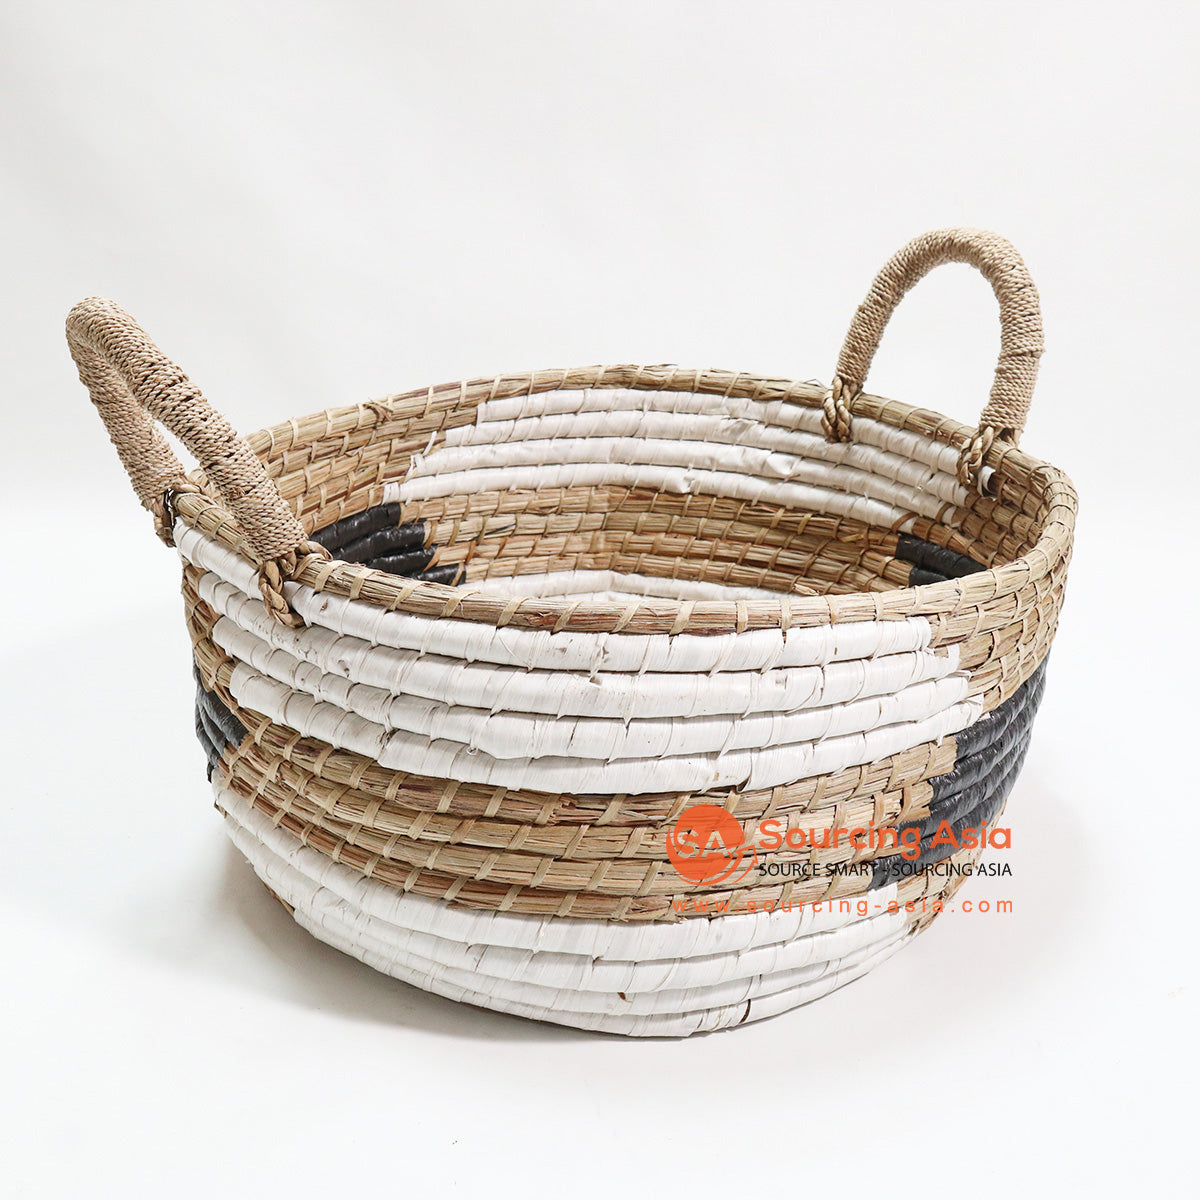 HBSC089 LARGE OPEN BASKET NATURAL WHITE AND GREY